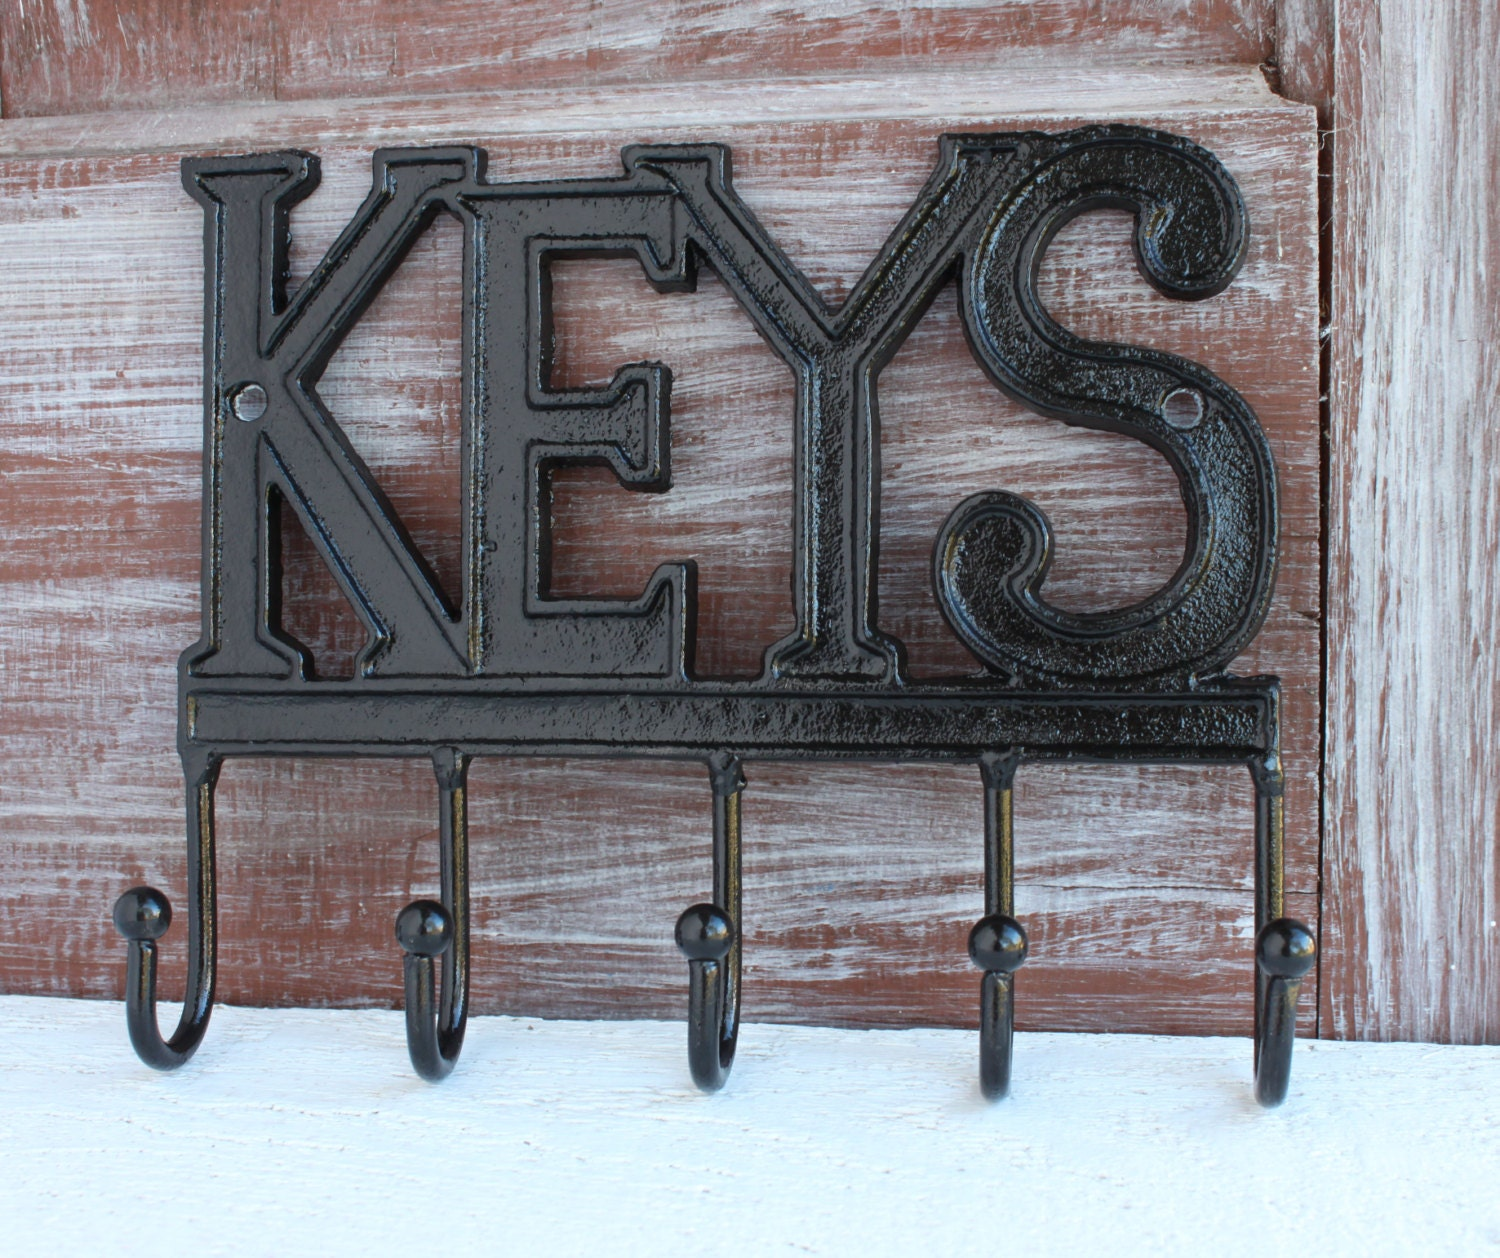 Black Key Holder Wall Key Hook Keys Rack Key Rail Wall